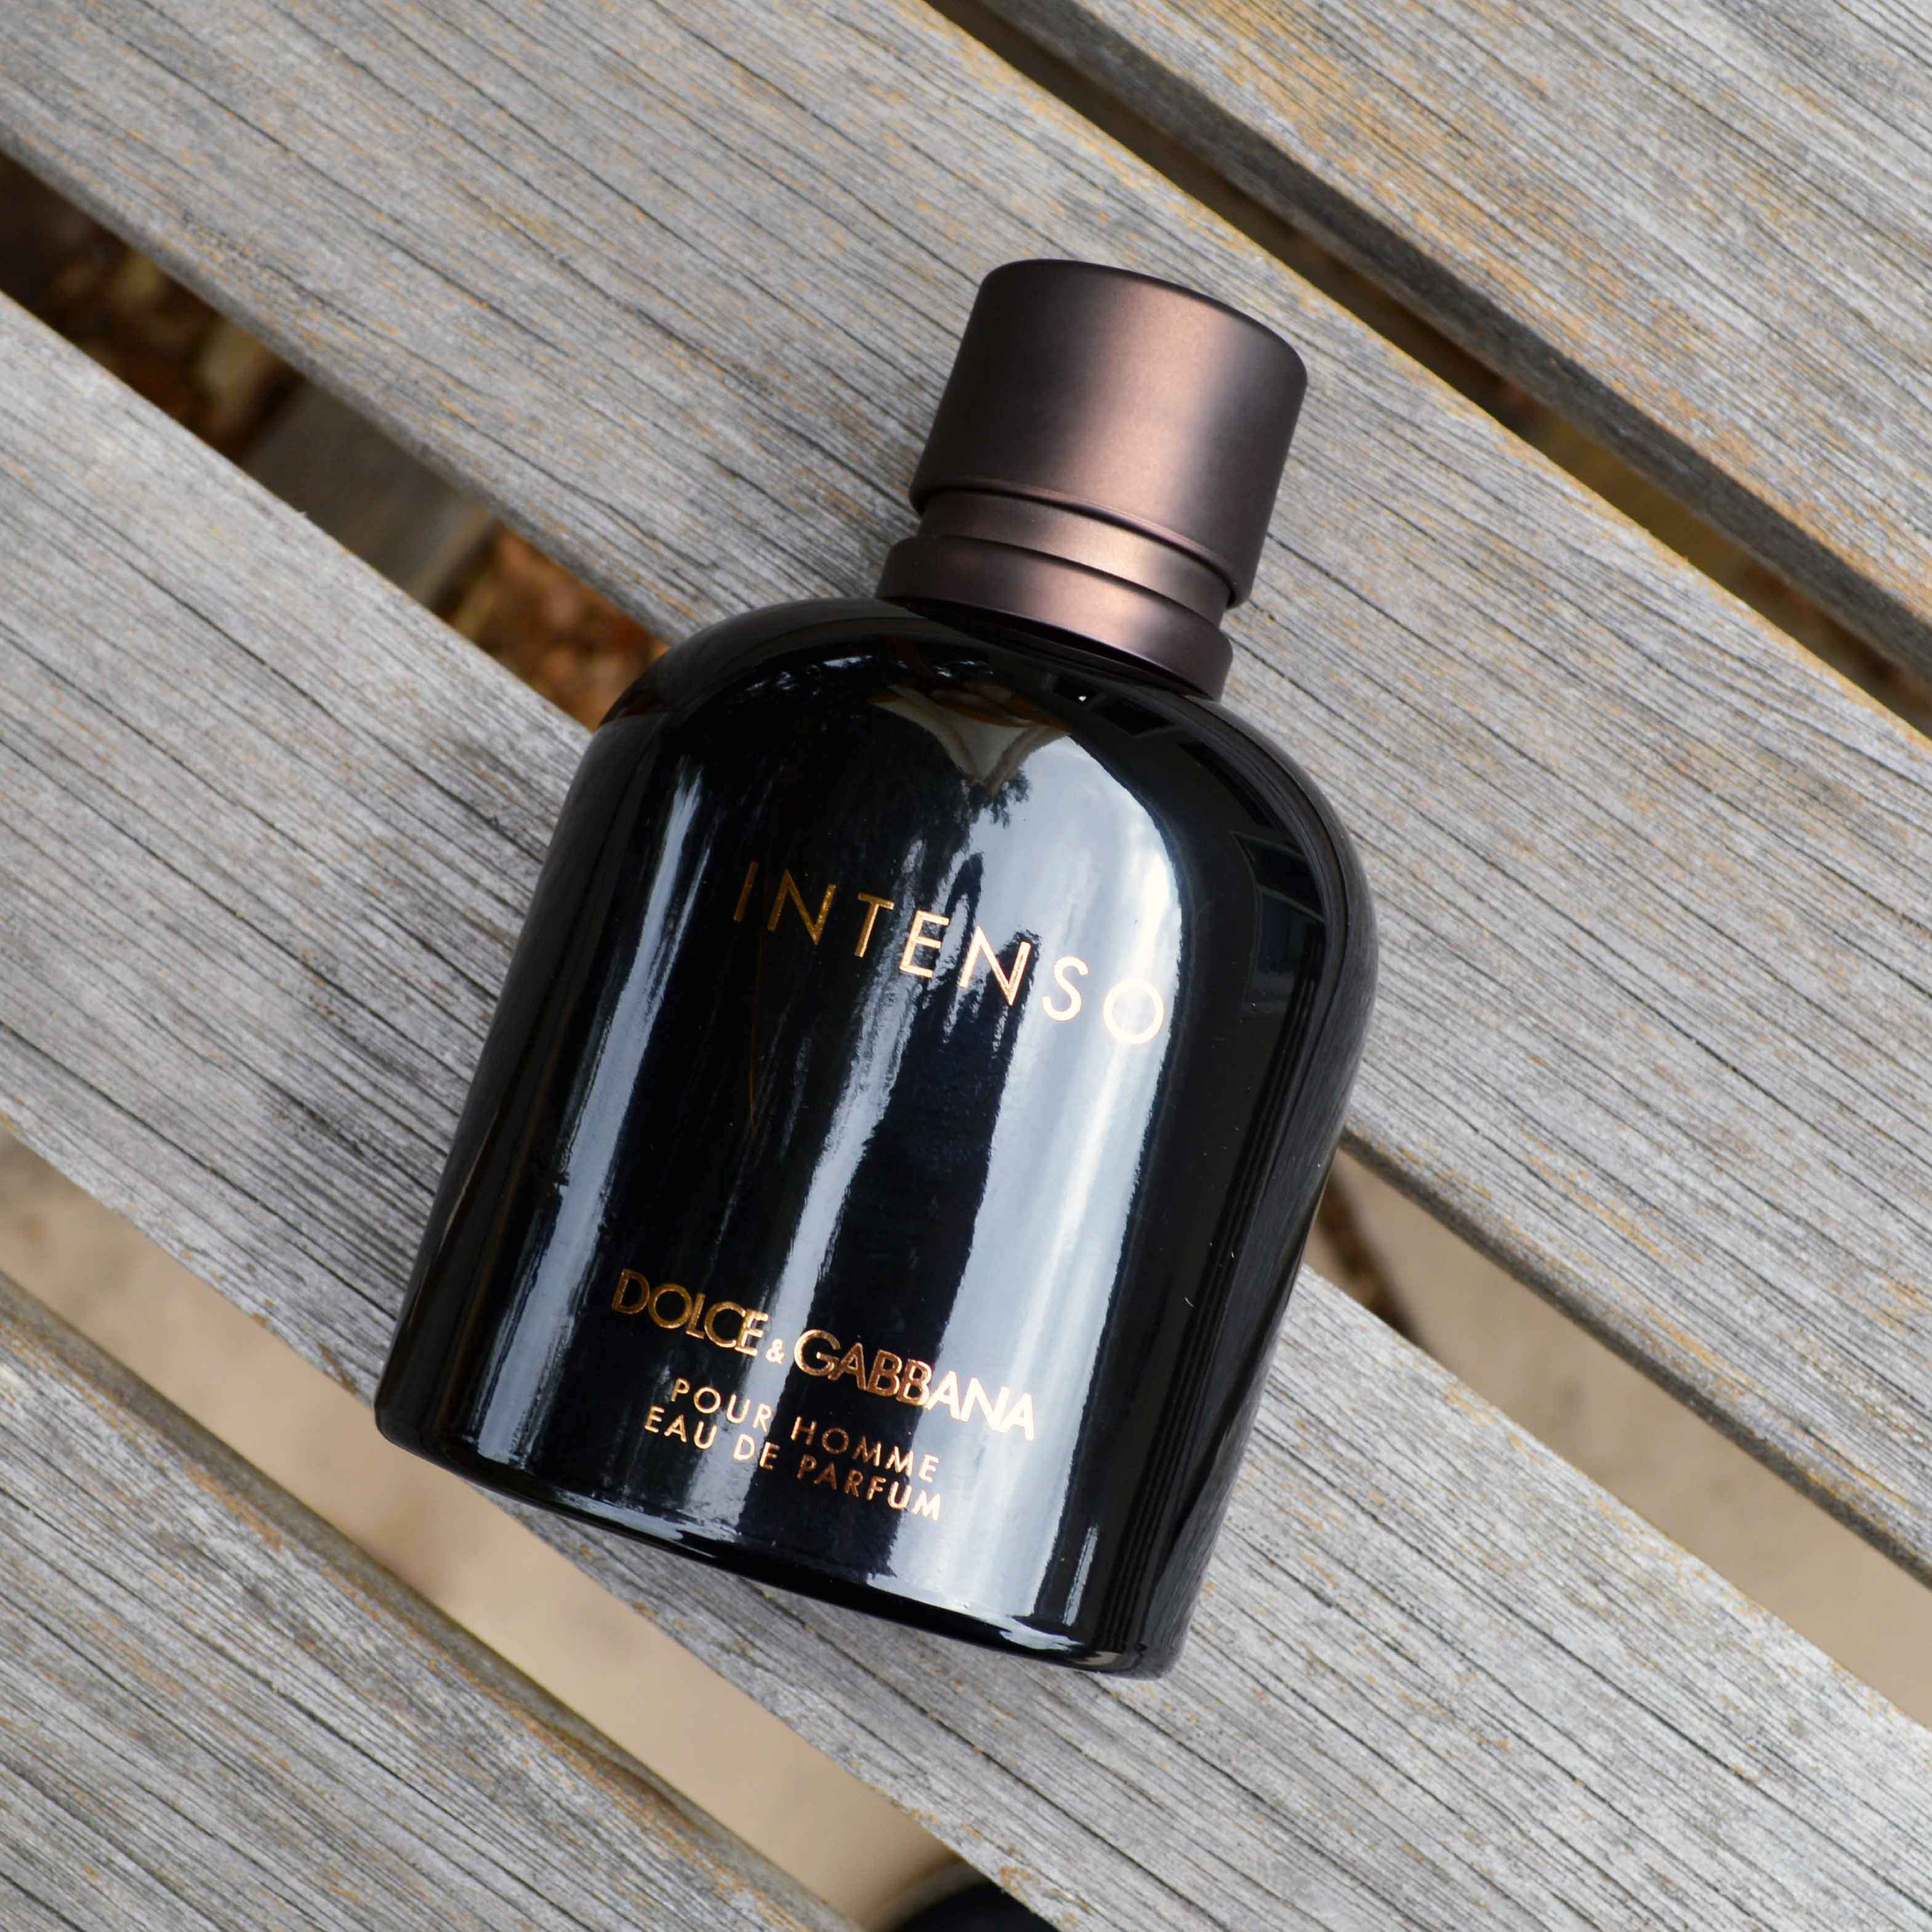 Dolce & Gabbana Intenso edp fathers day gift ideas cologne